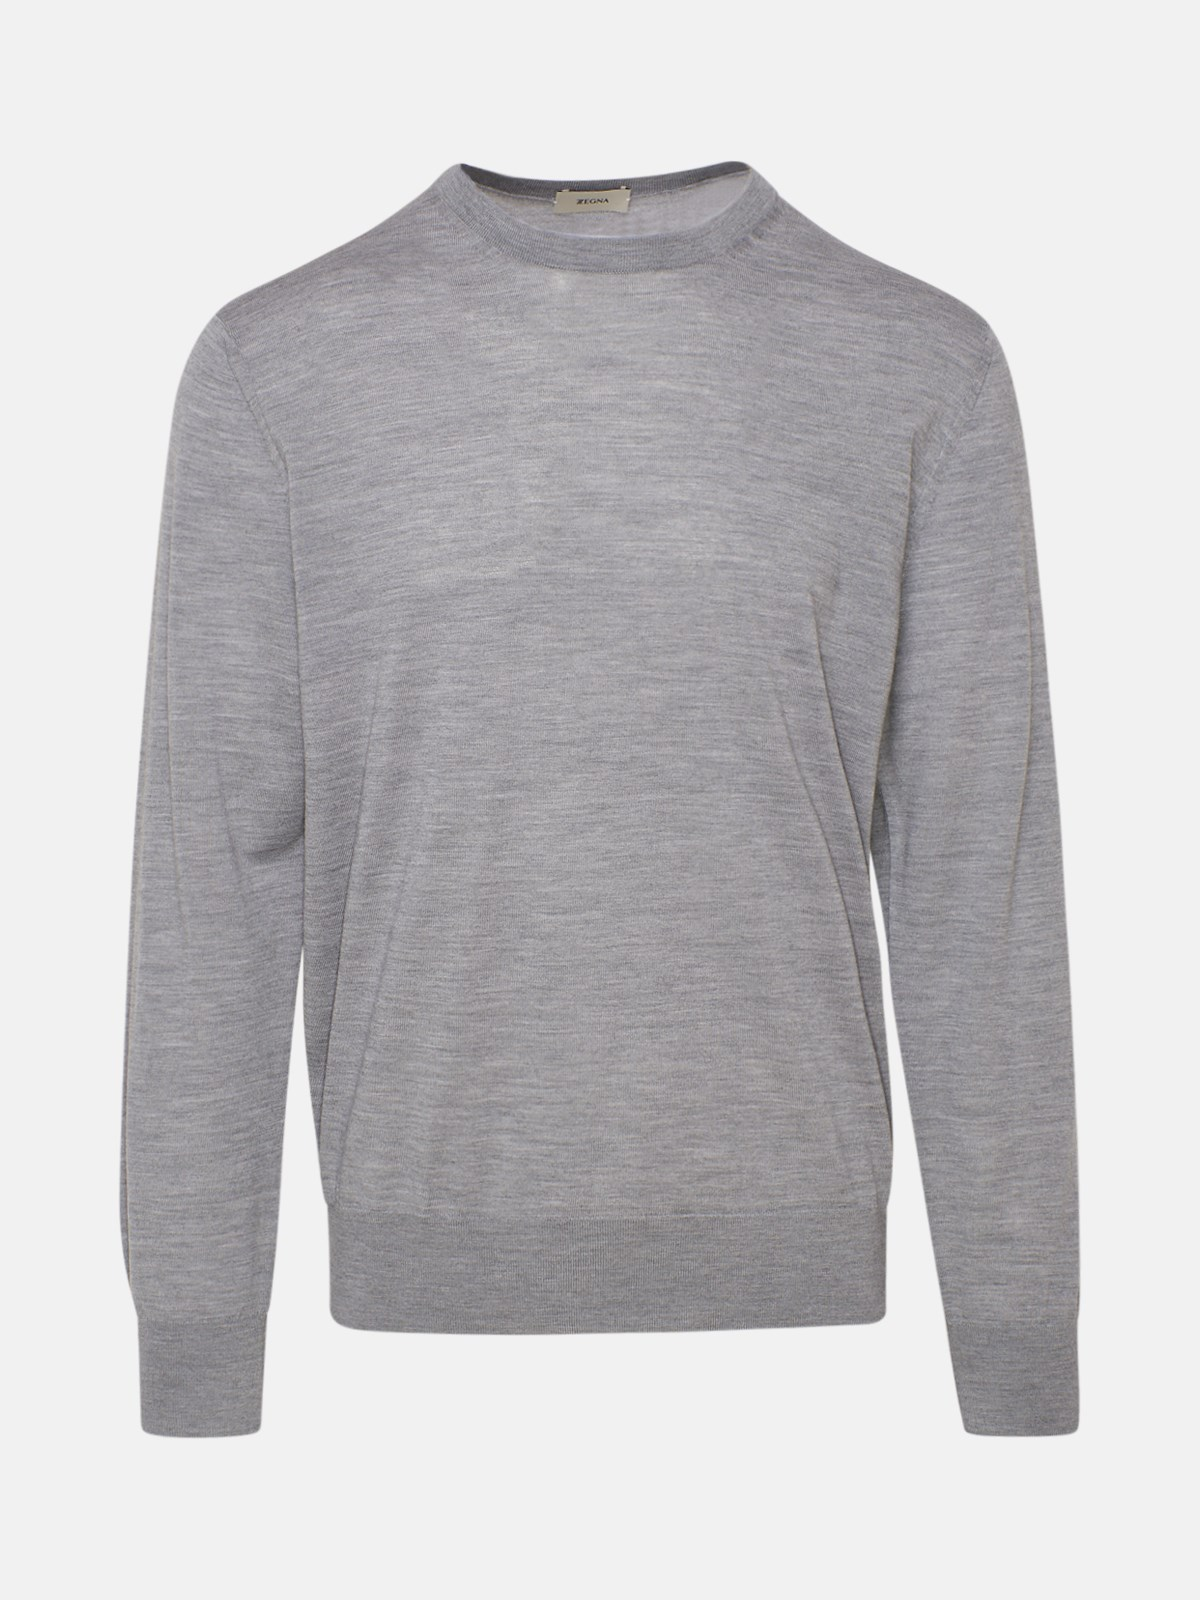 Z Zegna GREY SWEATER